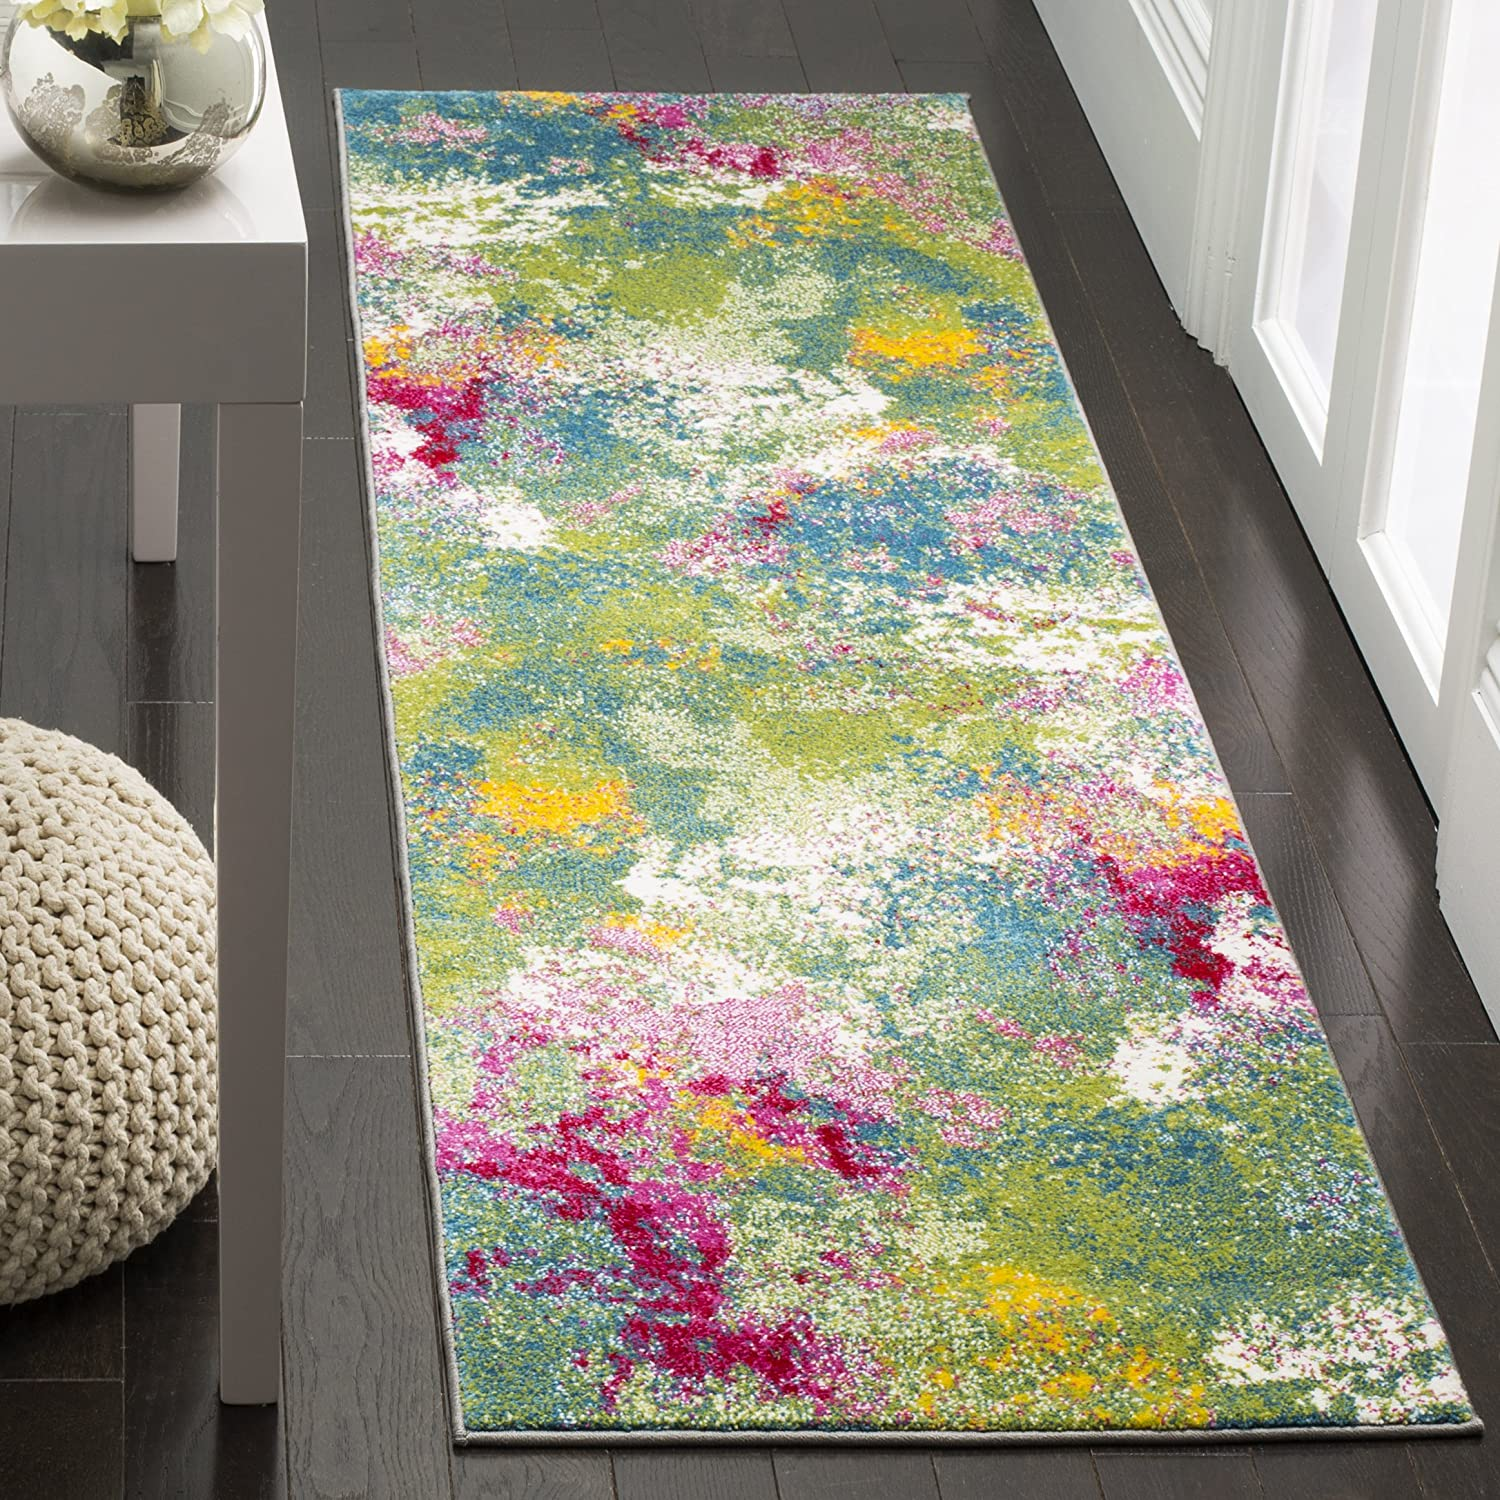 Amazon Com Safavieh Watercolor Collection Wtc697c Colorful Boho Abstract Non Shedding Stain Resistant Living Room Bedroom Runner 2 3 X 8 Green Fuchsia Furniture Decor